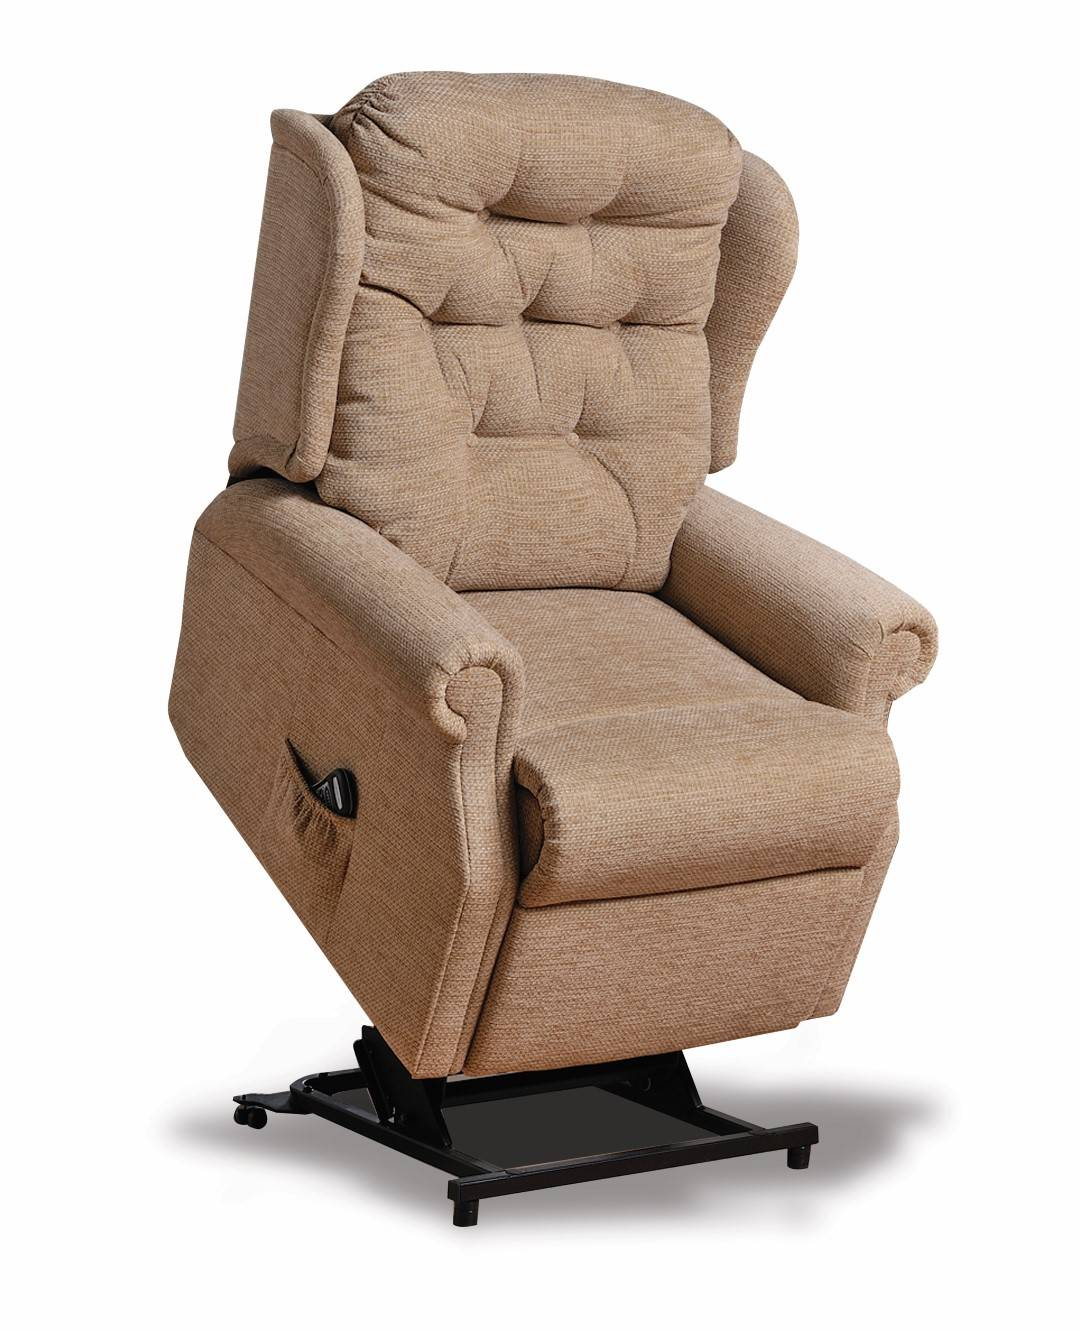 Fine Woburn Standard Dual Motor Lift Recliner Fabric Theyellowbook Wood Chair Design Ideas Theyellowbookinfo